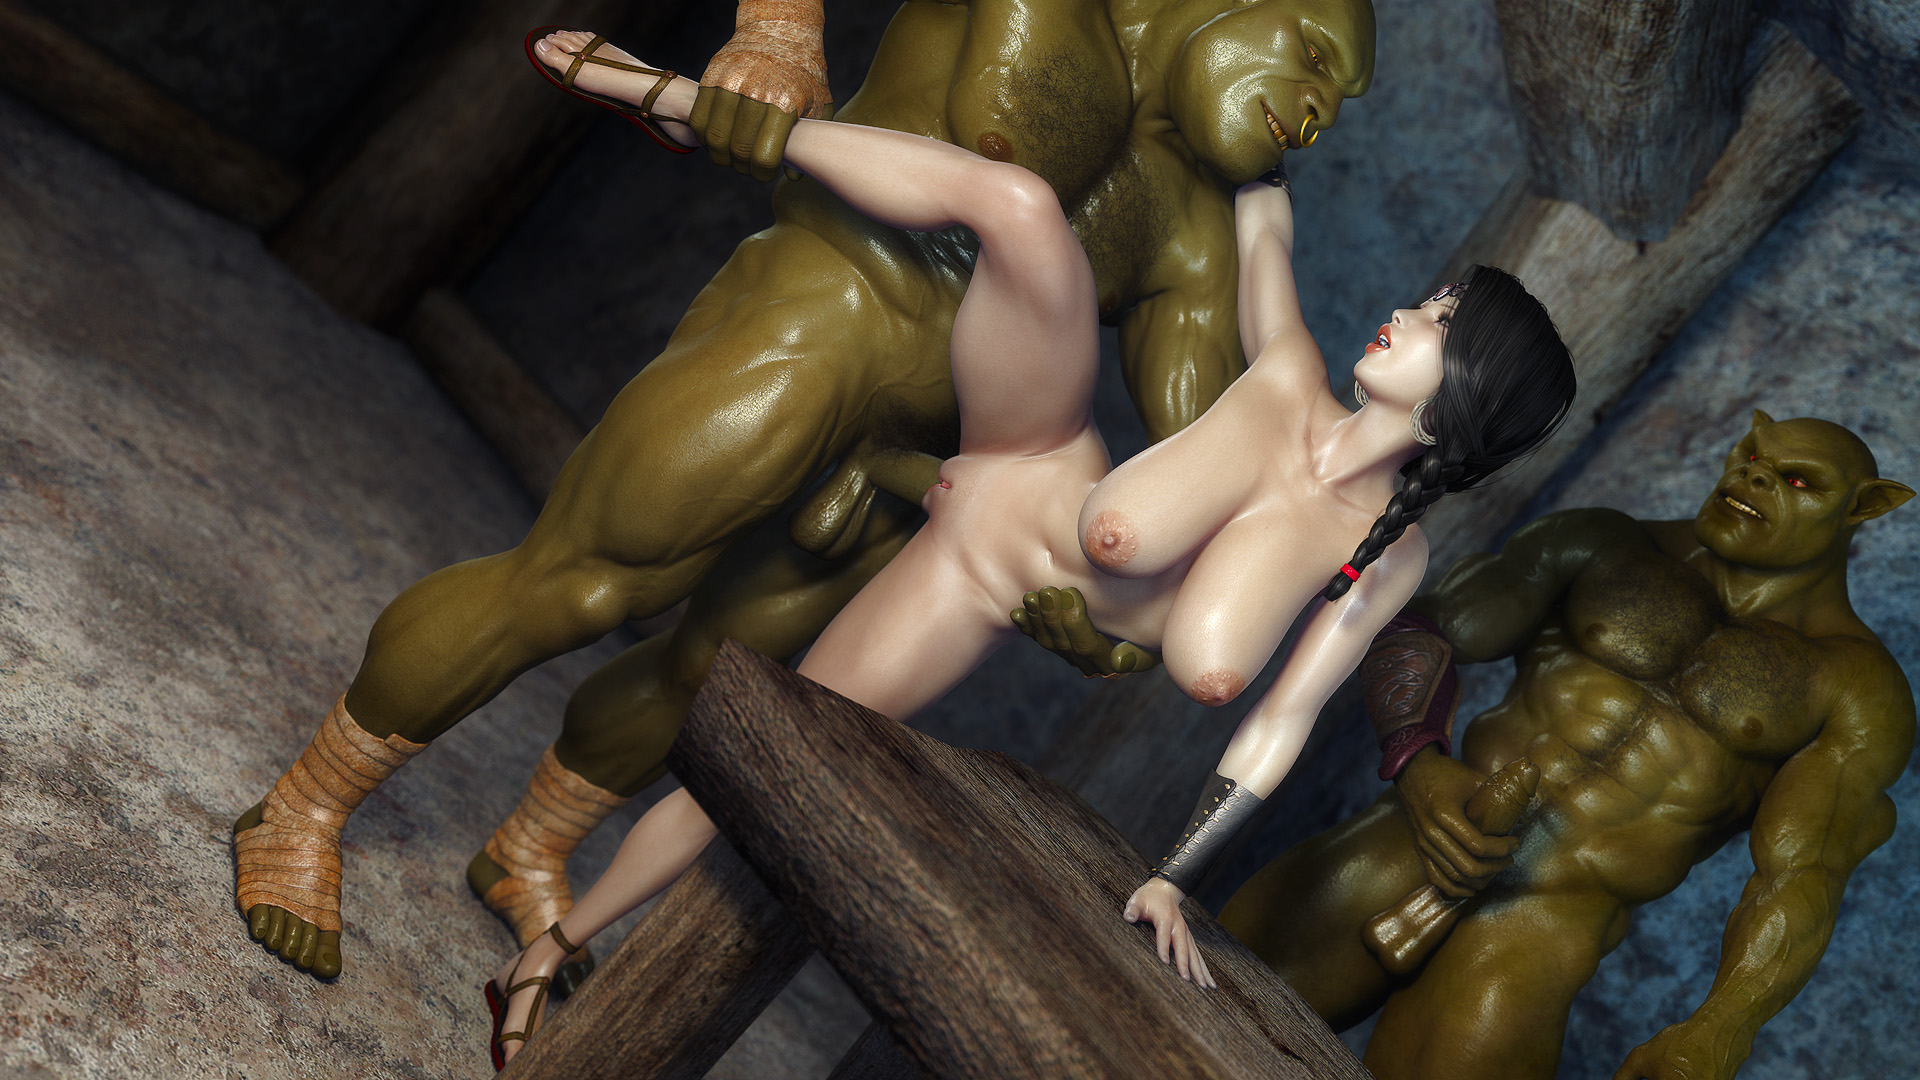 Lord of the g-string orc fuck smut scenes